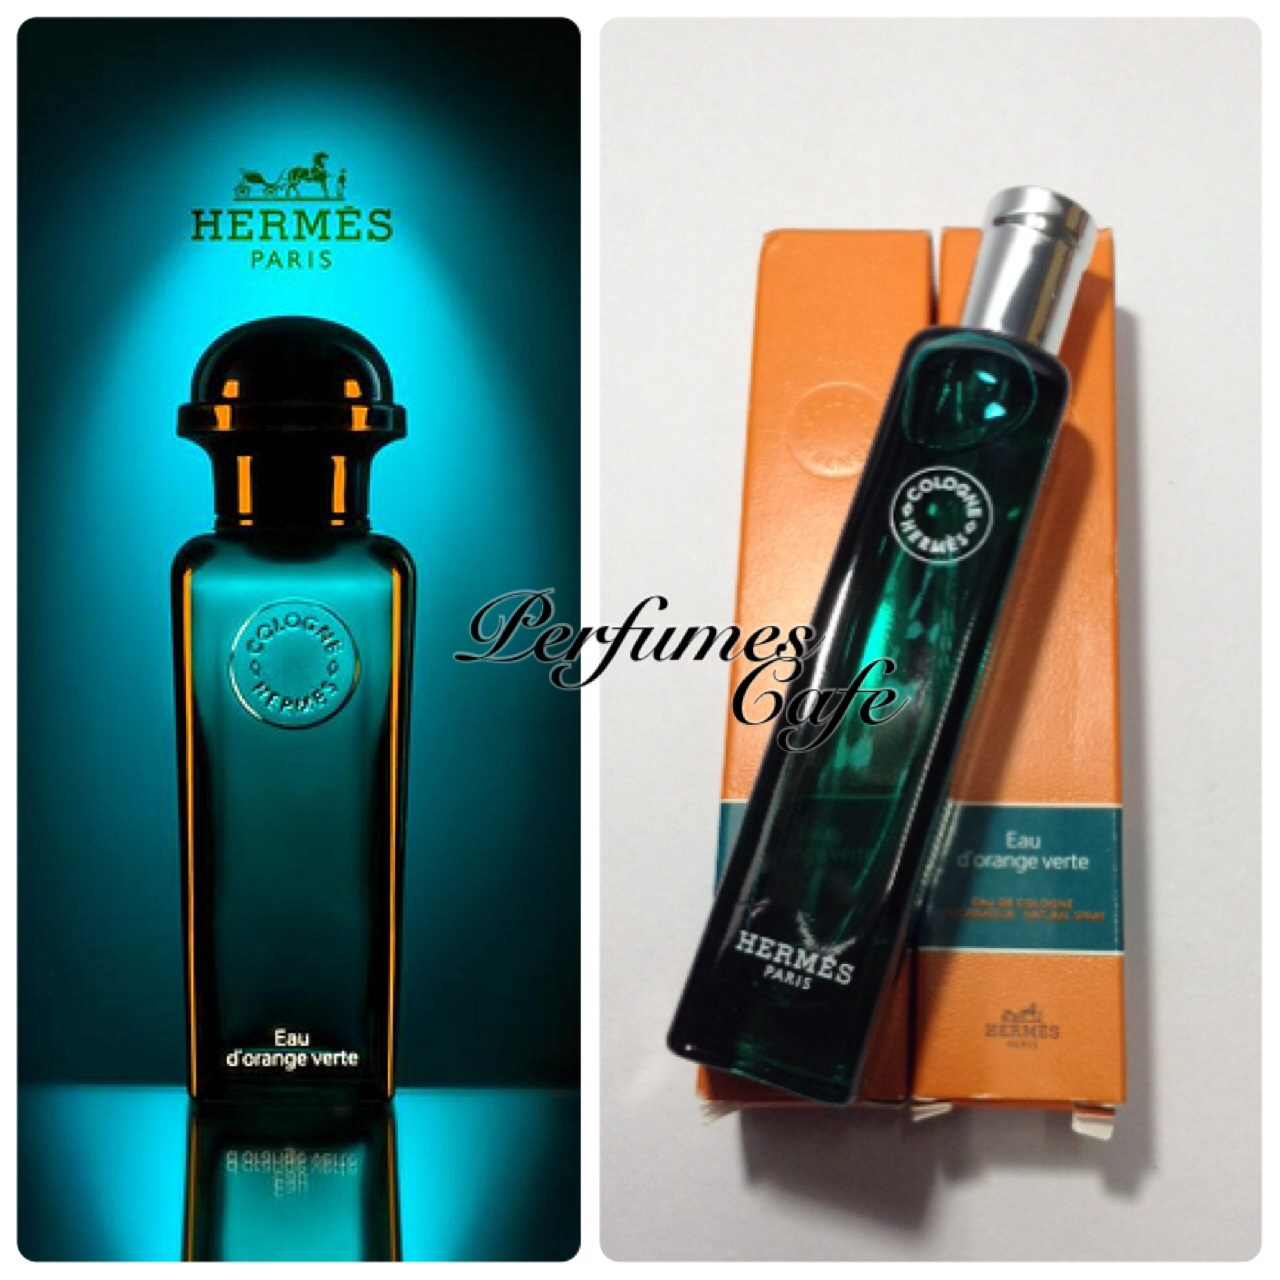 Hermes Eau d' orange verte Eau de Cologne spray ขนาด 15 มิล